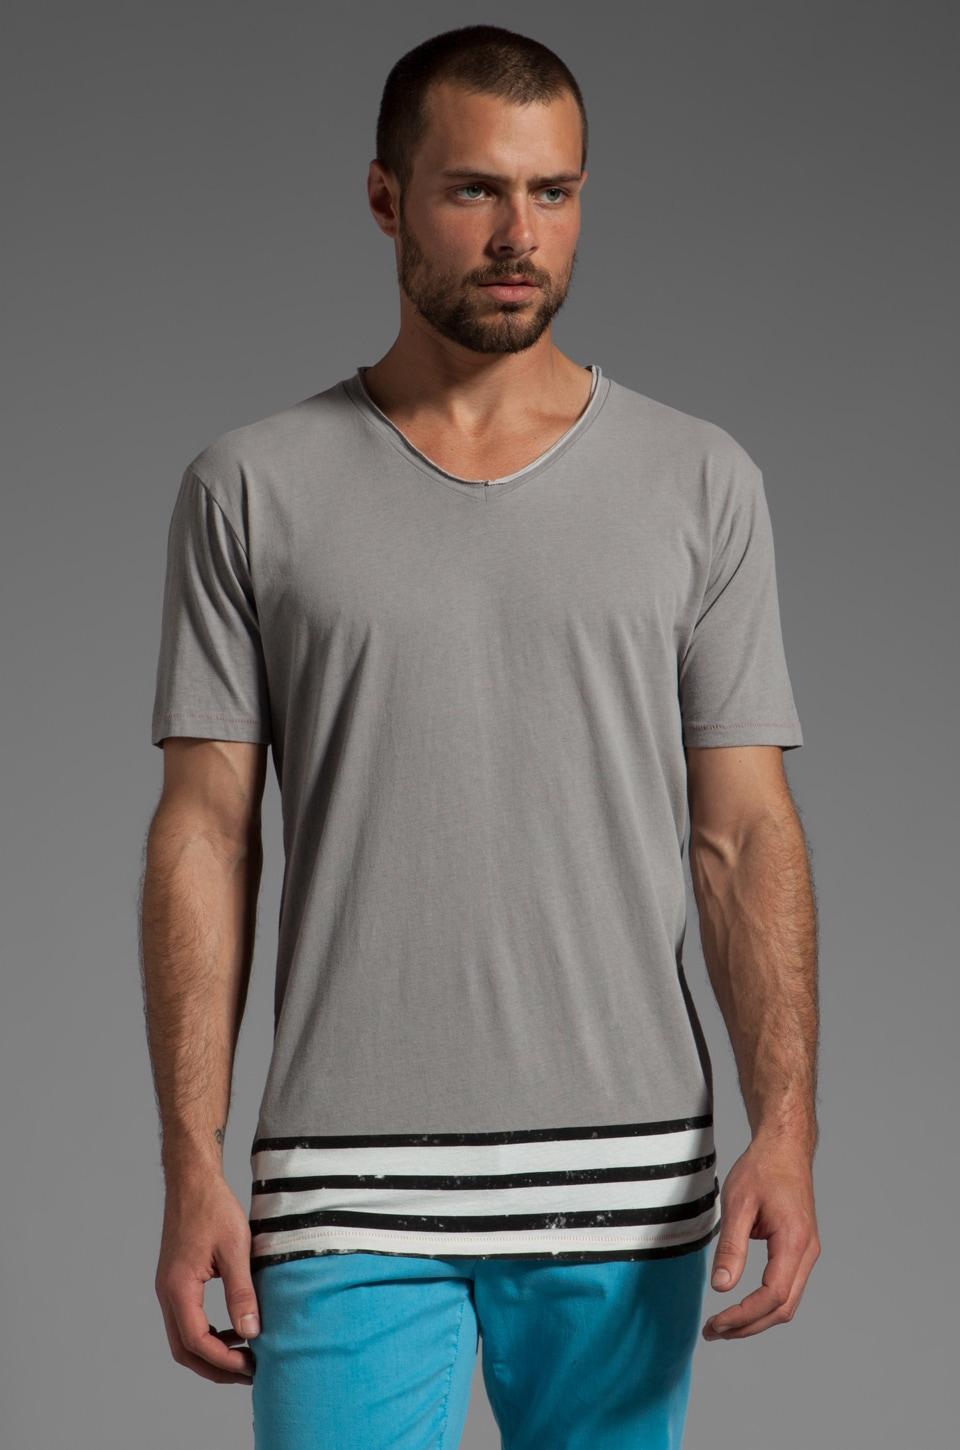 Cohesive & co. Intrepid S/S V-Neck Tee en Gris Clair